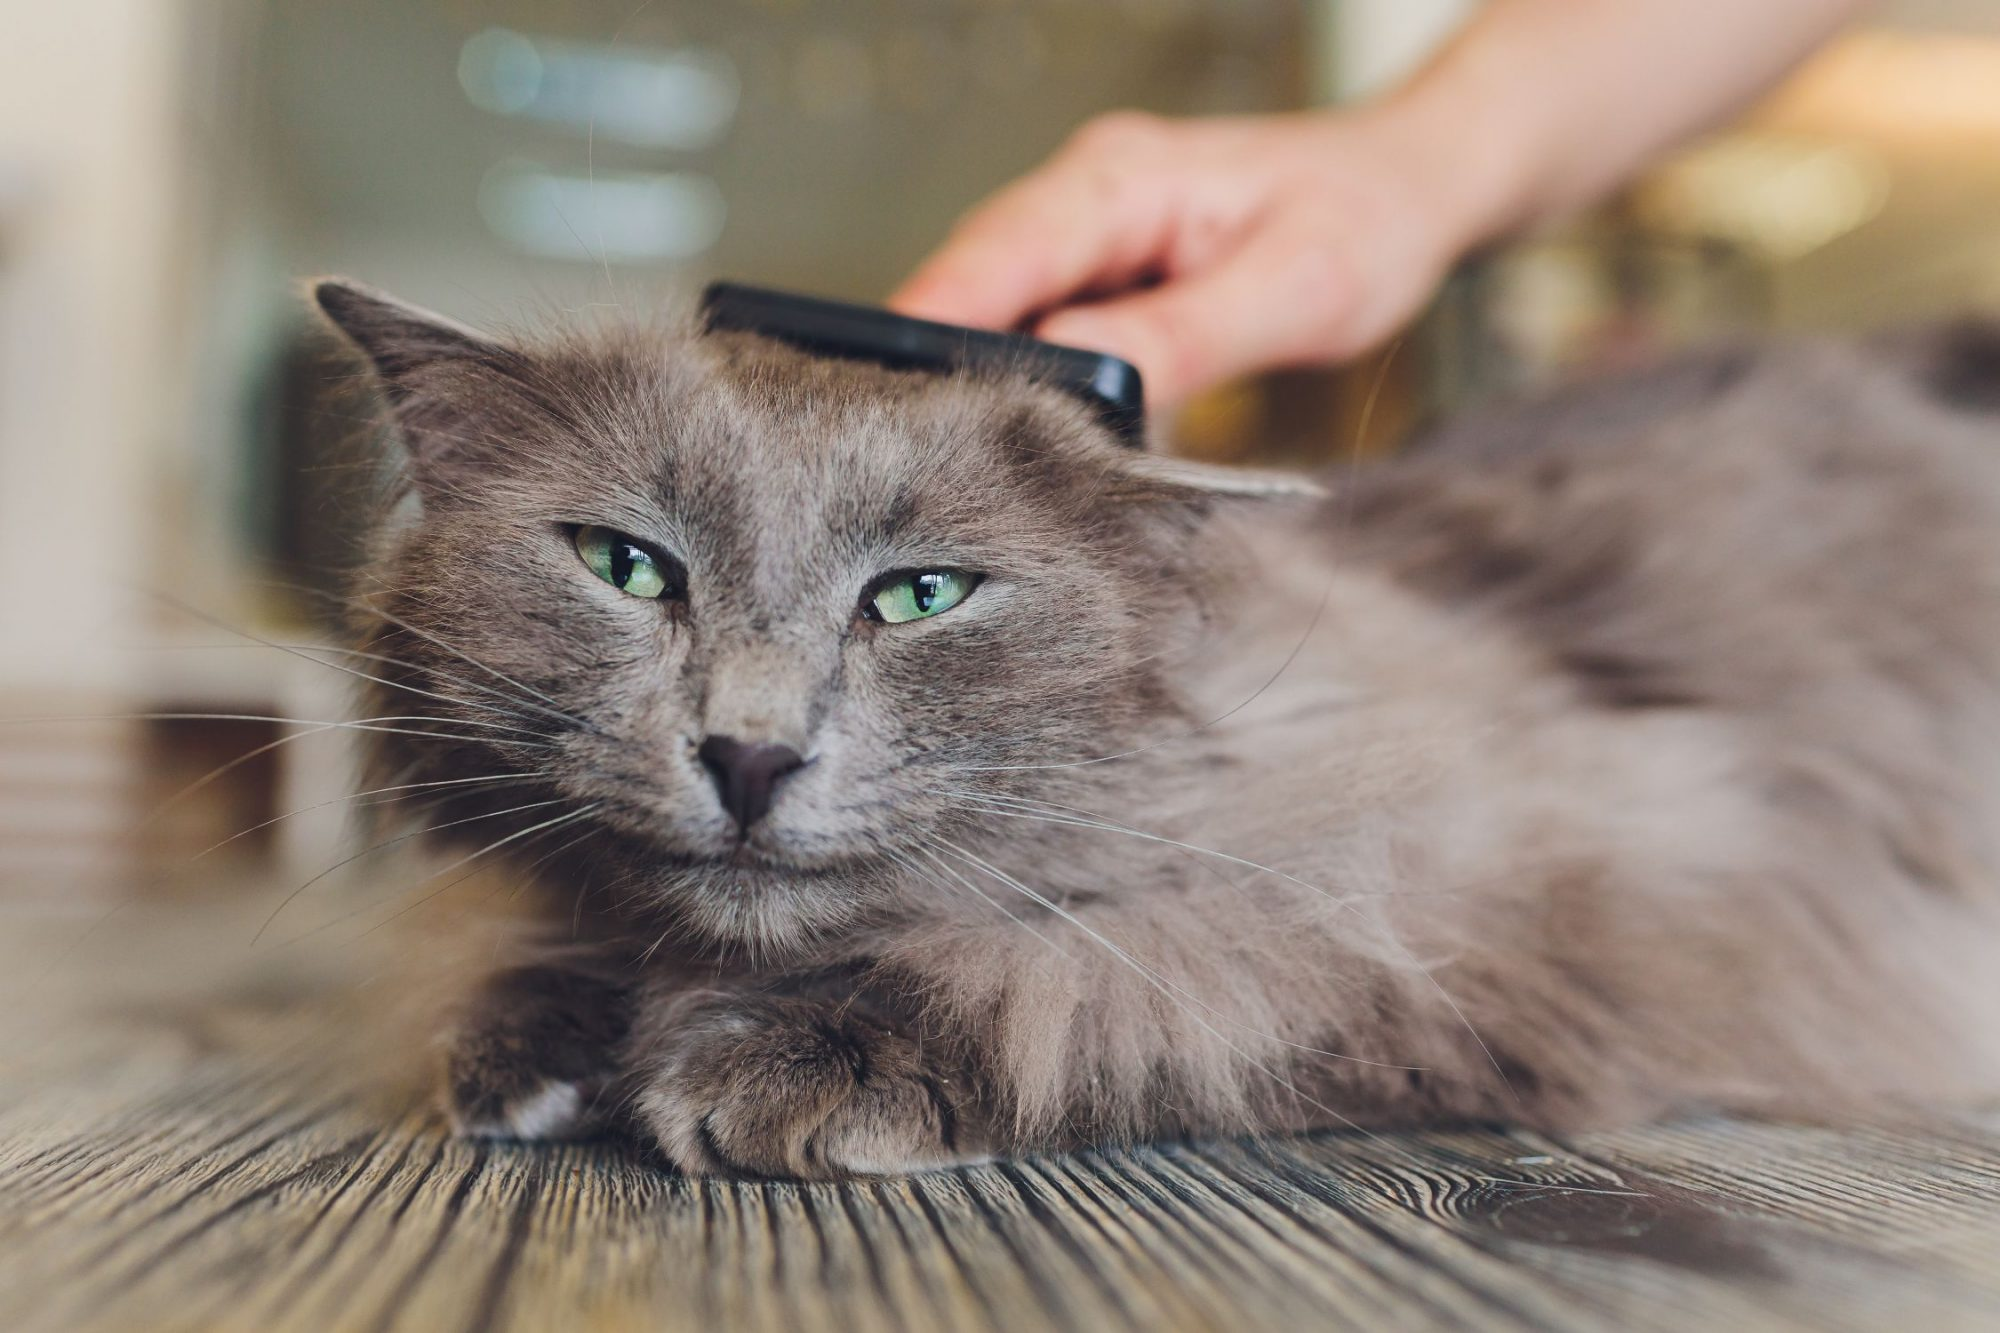 A long-haired cat getting brushed.